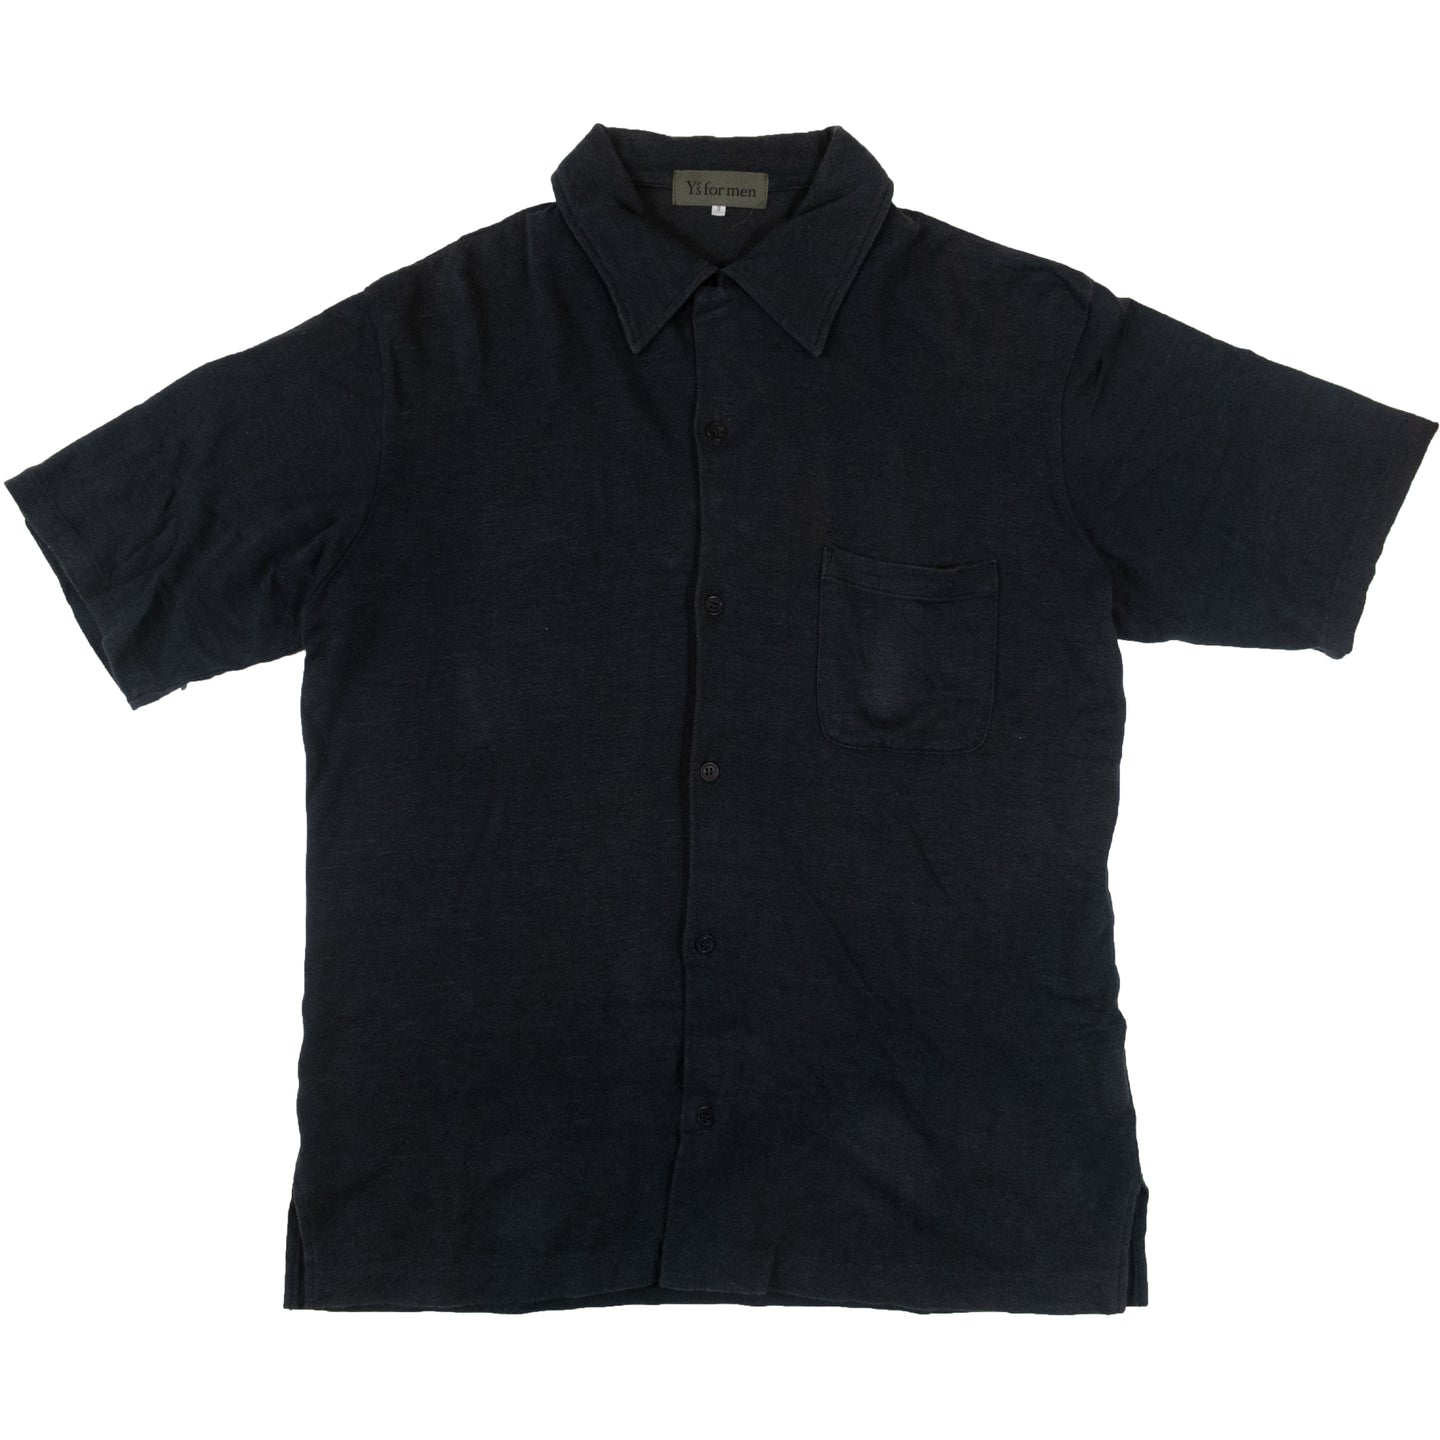 y's for men short sleeve <Br> size 3